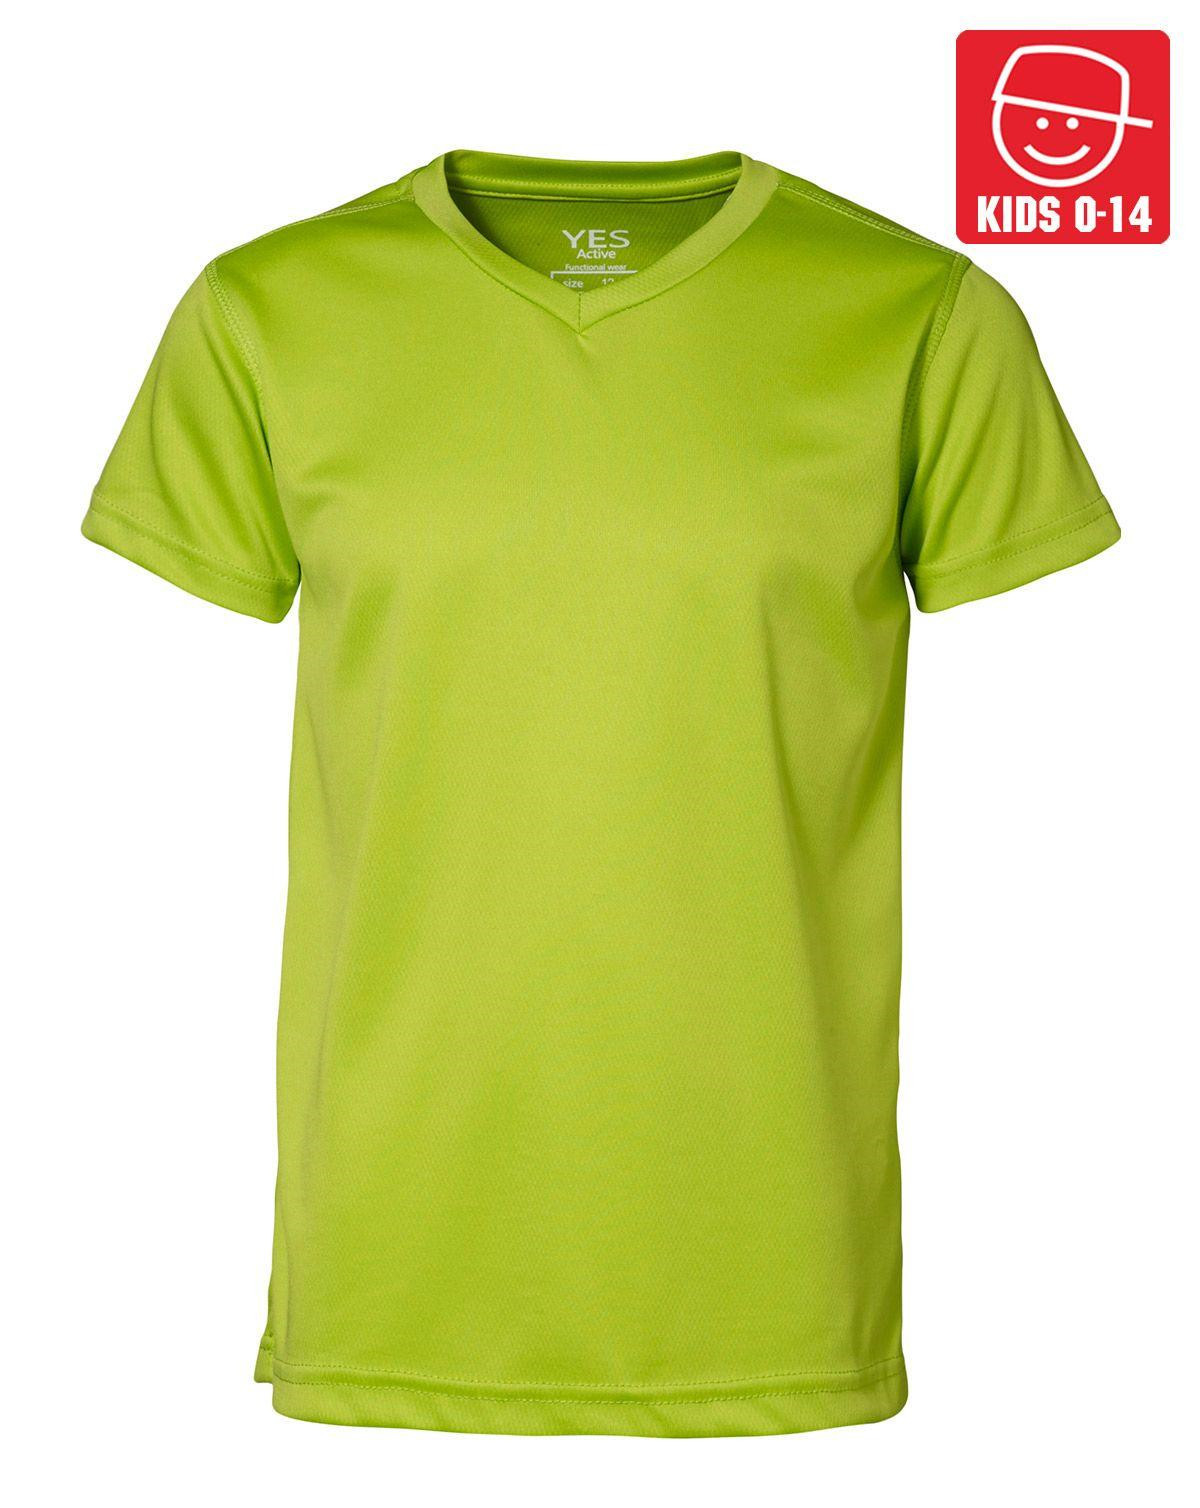 Image of   ID YES Svedtransporterende T-shirt til Børn (Lime, 152)